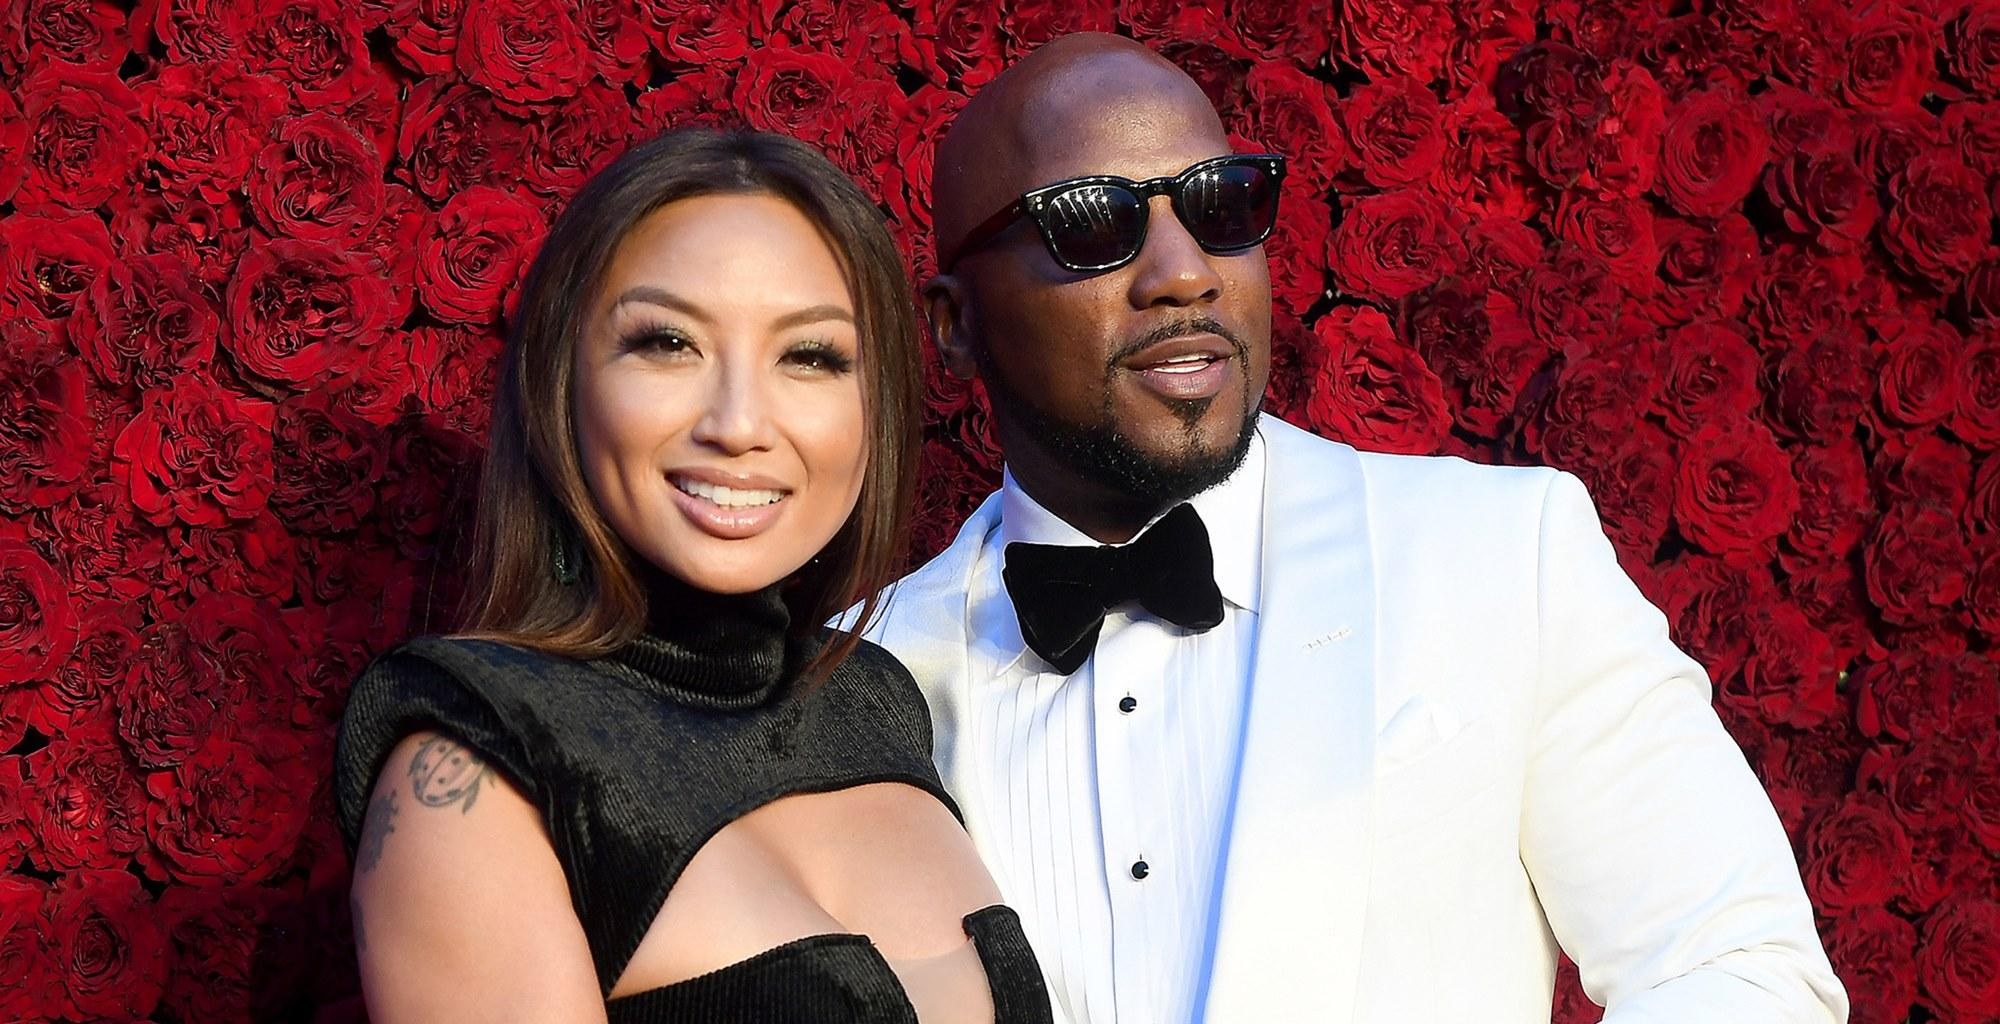 Jeezy And Jeannie Mai's Mother, Olivia, Have Wild And Hilarious Challenge For A Prize In New Video